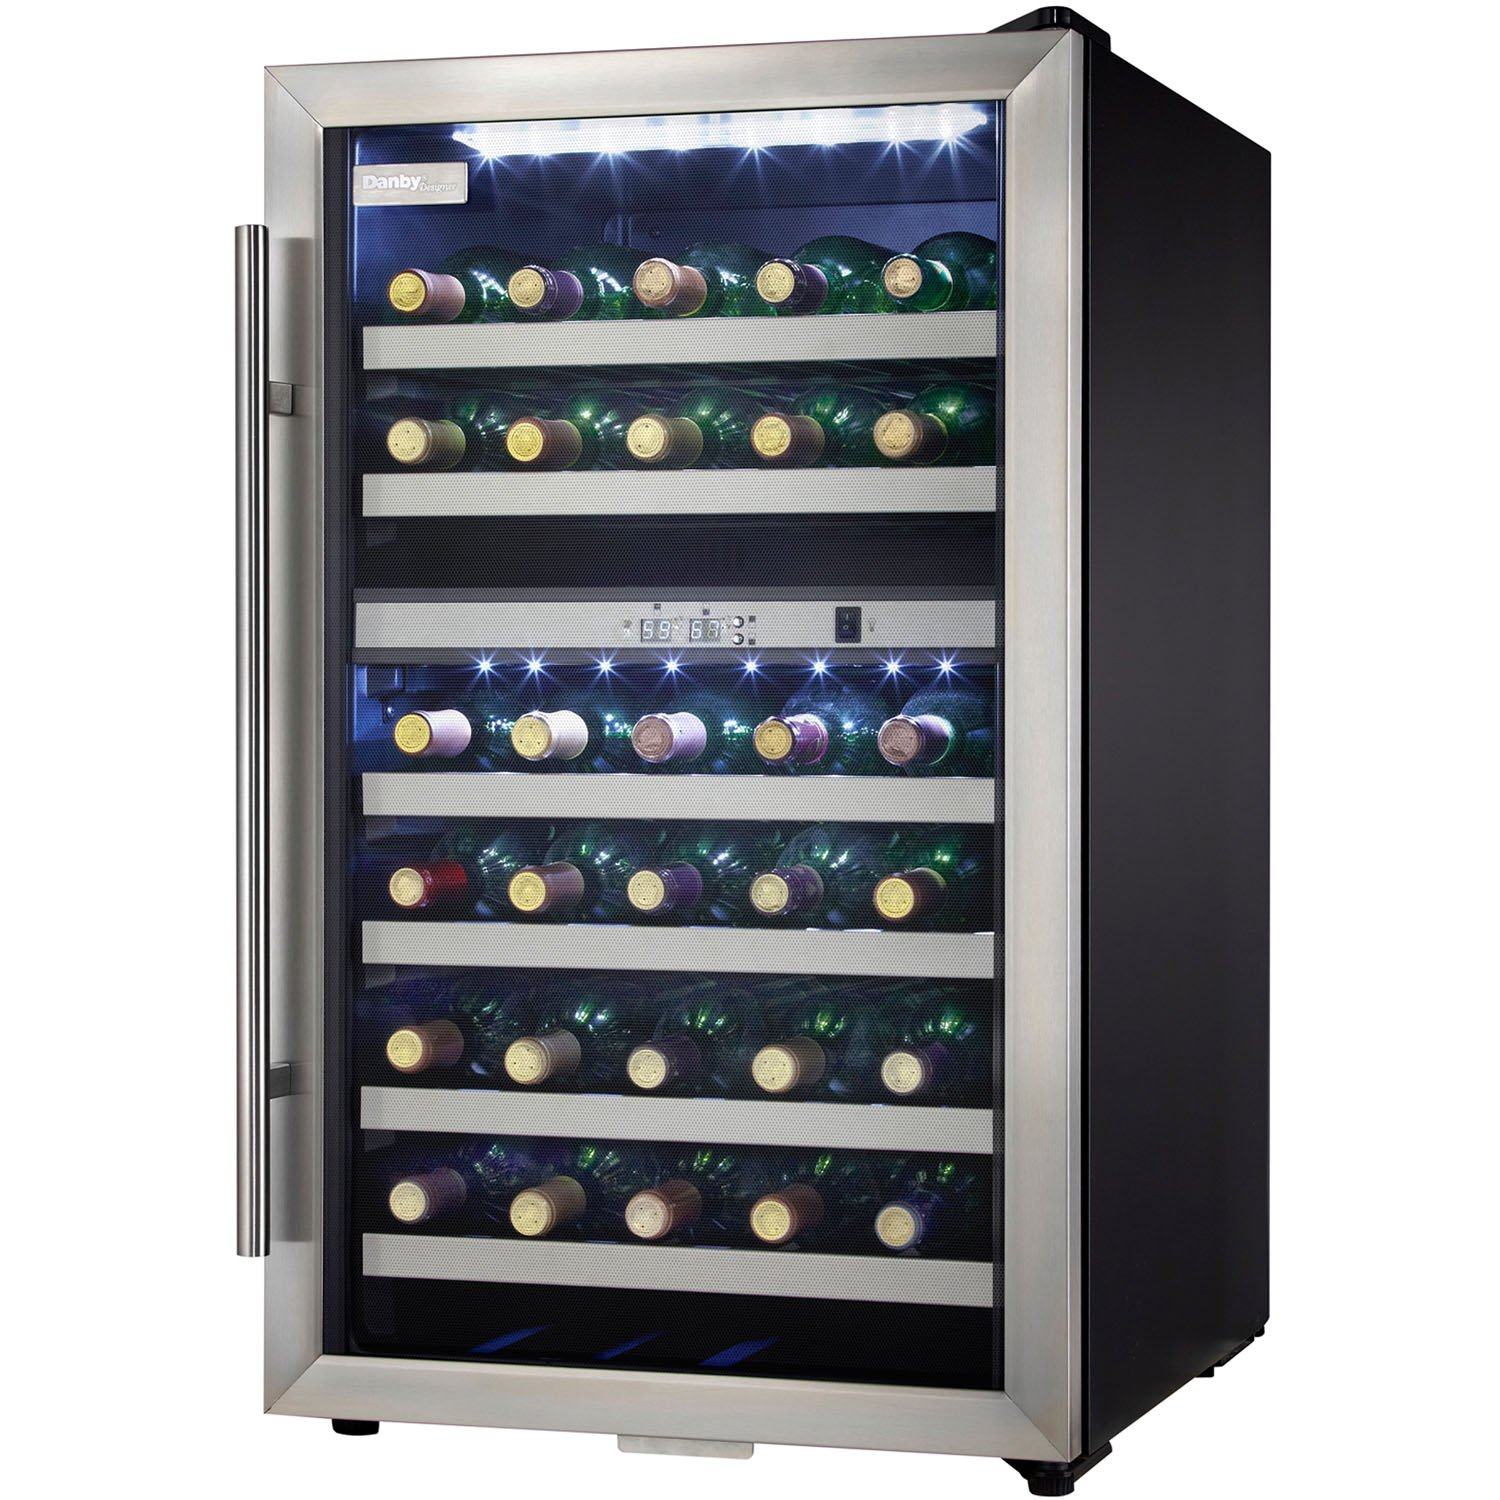 danby dwcblsdd designer dual zone wine cooler stainless steel  - danby dwcblsdd designer dual zone wine cooler stainless steelamazonca home  kitchen